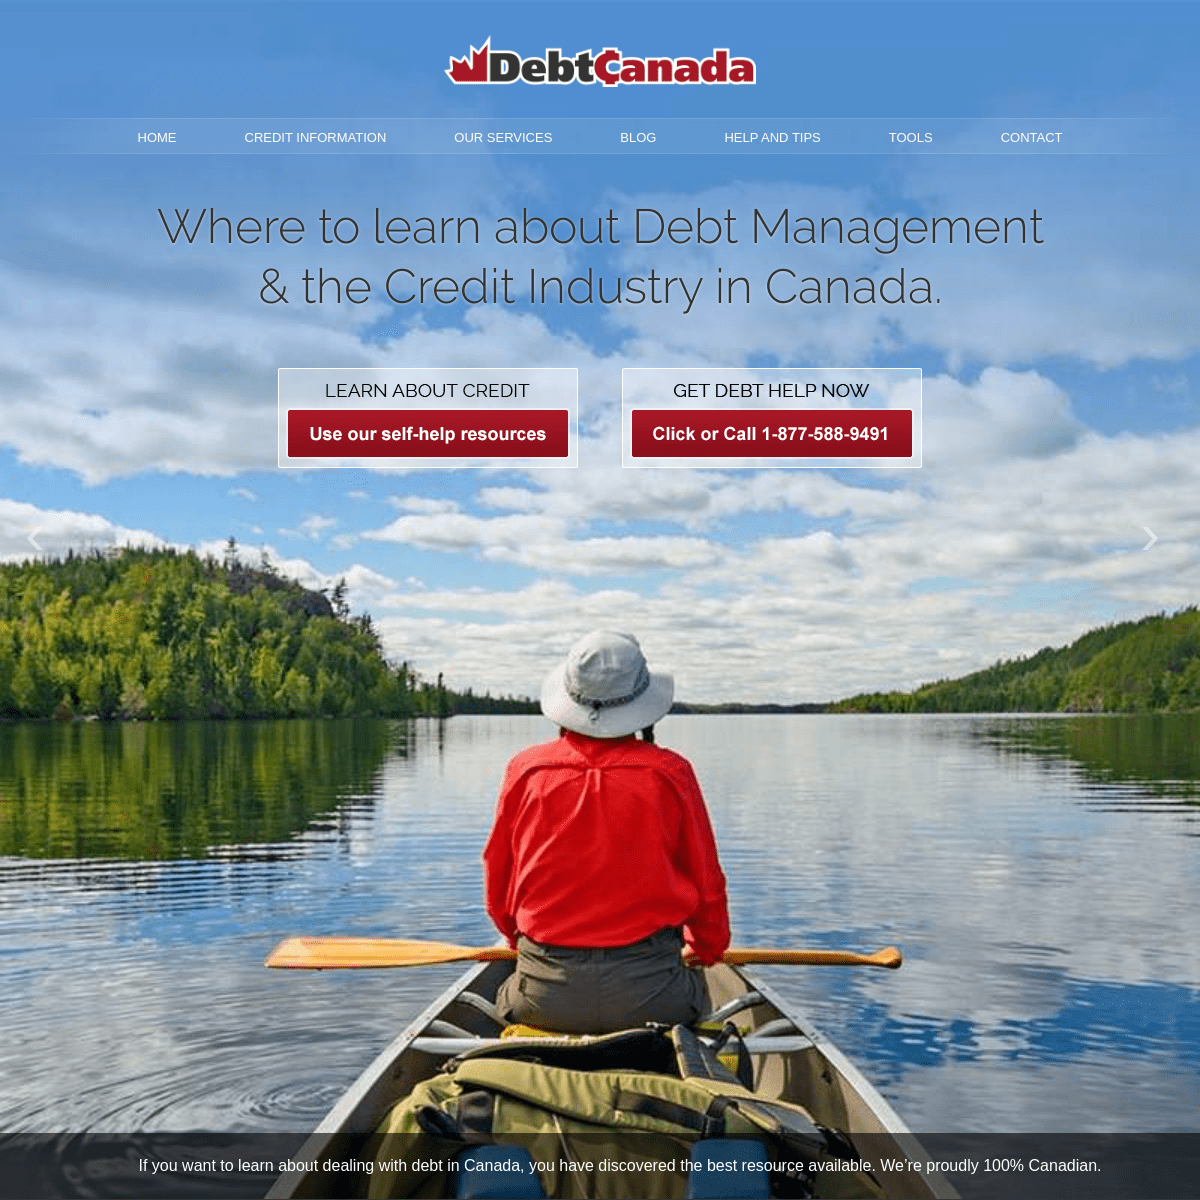 ArchiveBay.com - debtcanada.ca - Your Credit Education Specialists™ - Debt Canada- Your Canadian Credit Education Centre